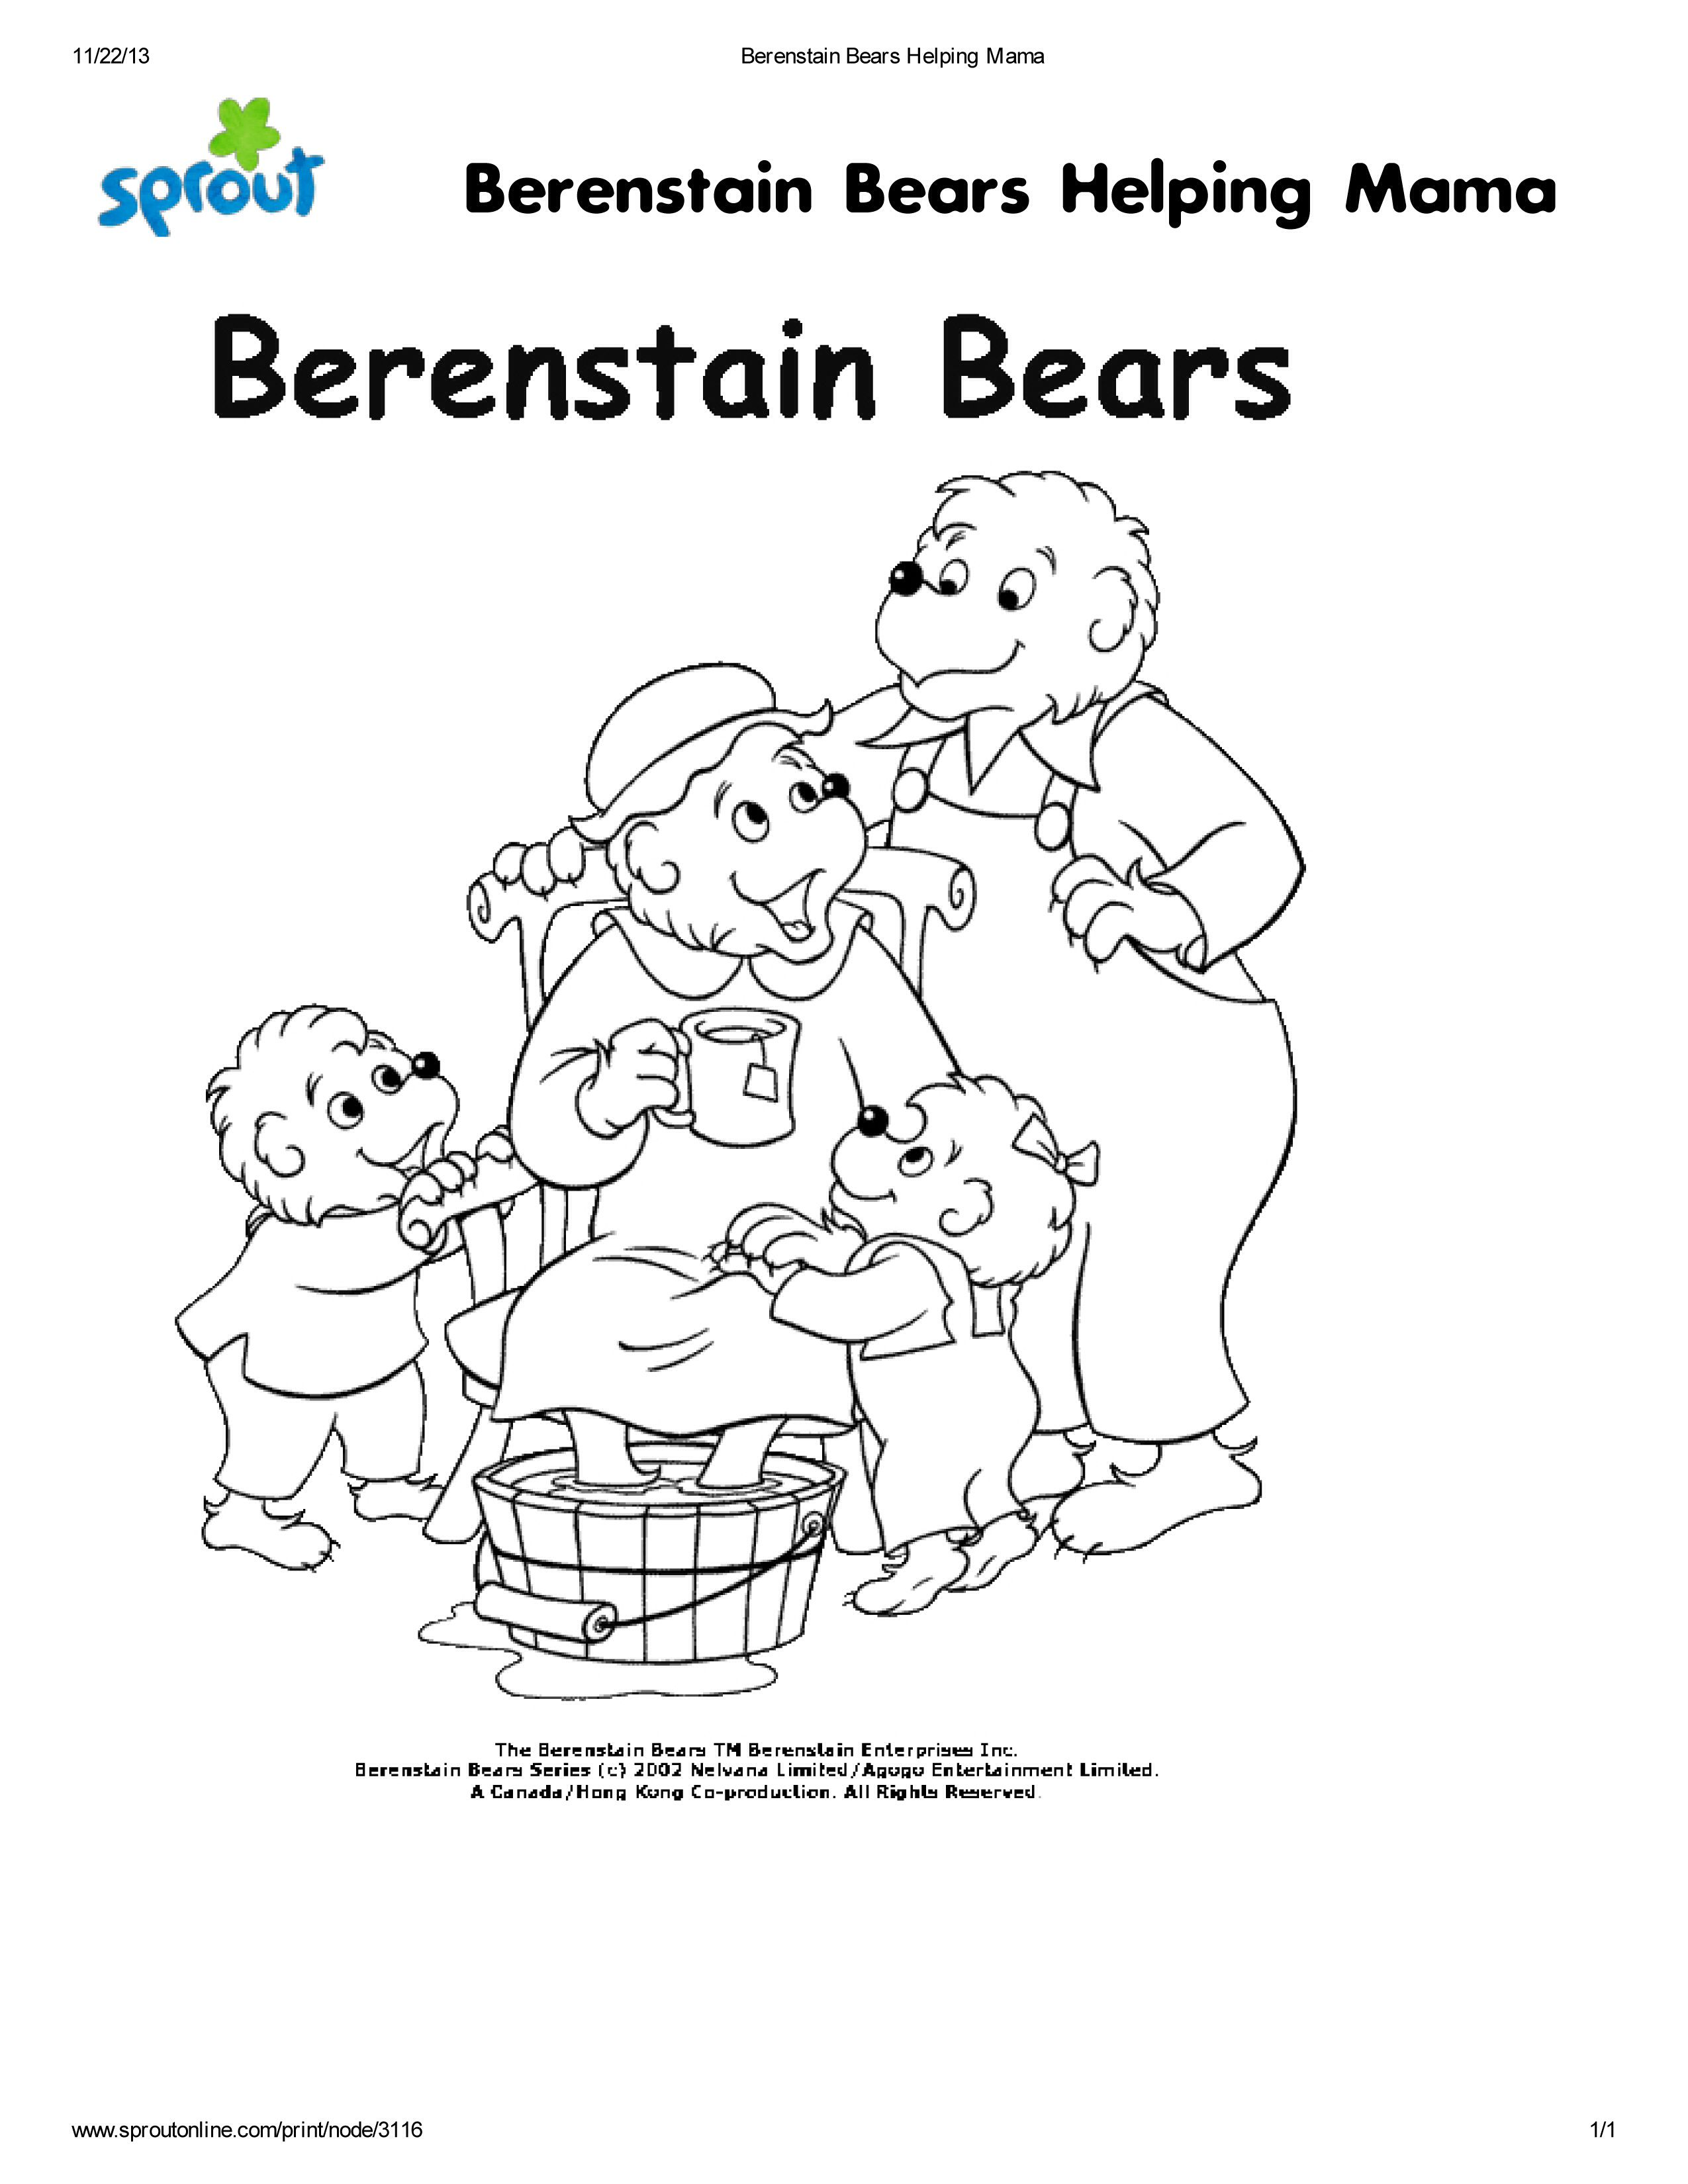 berenstain bears treehouse coloring pages - photo#22